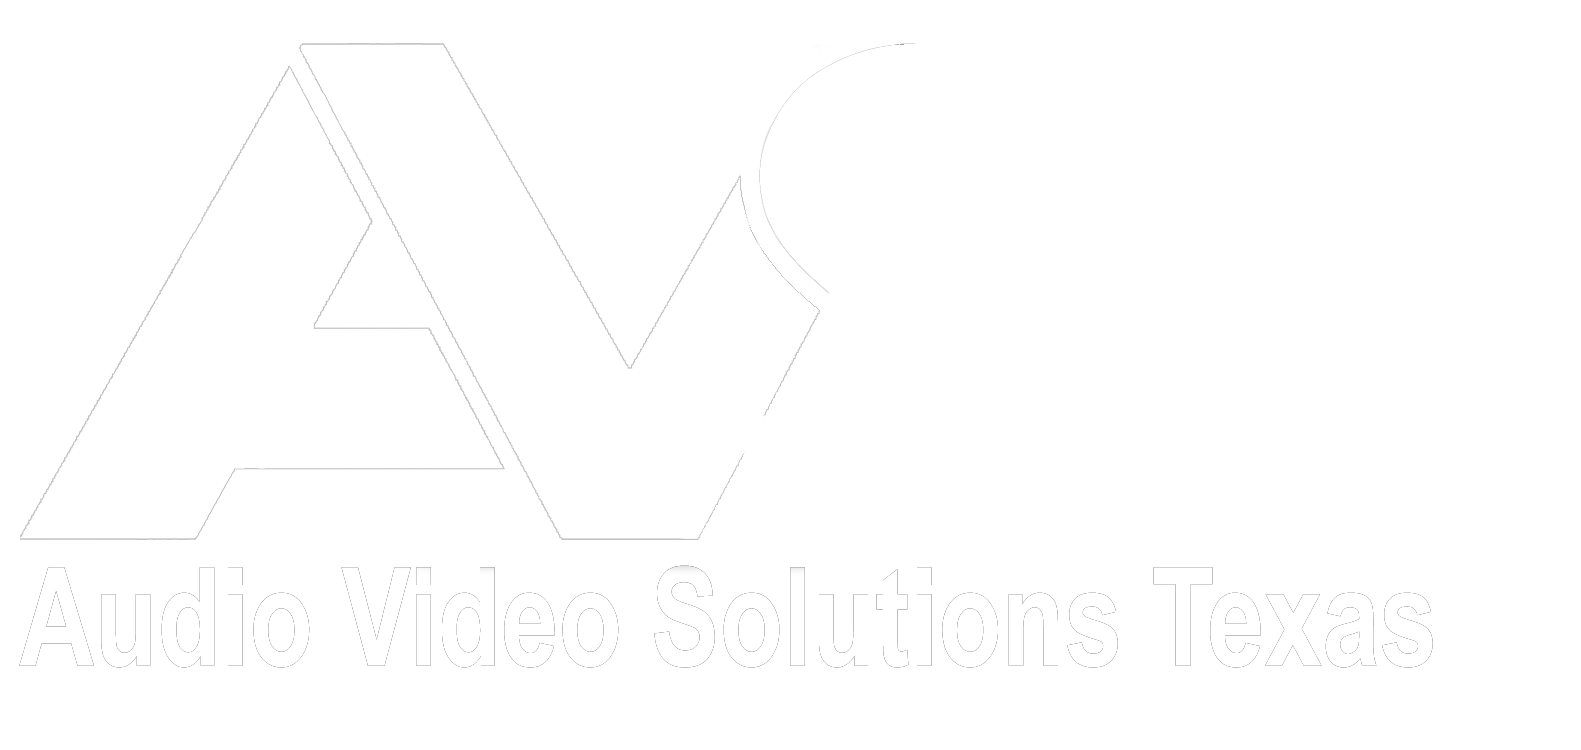 Audio Video Solutions Texas